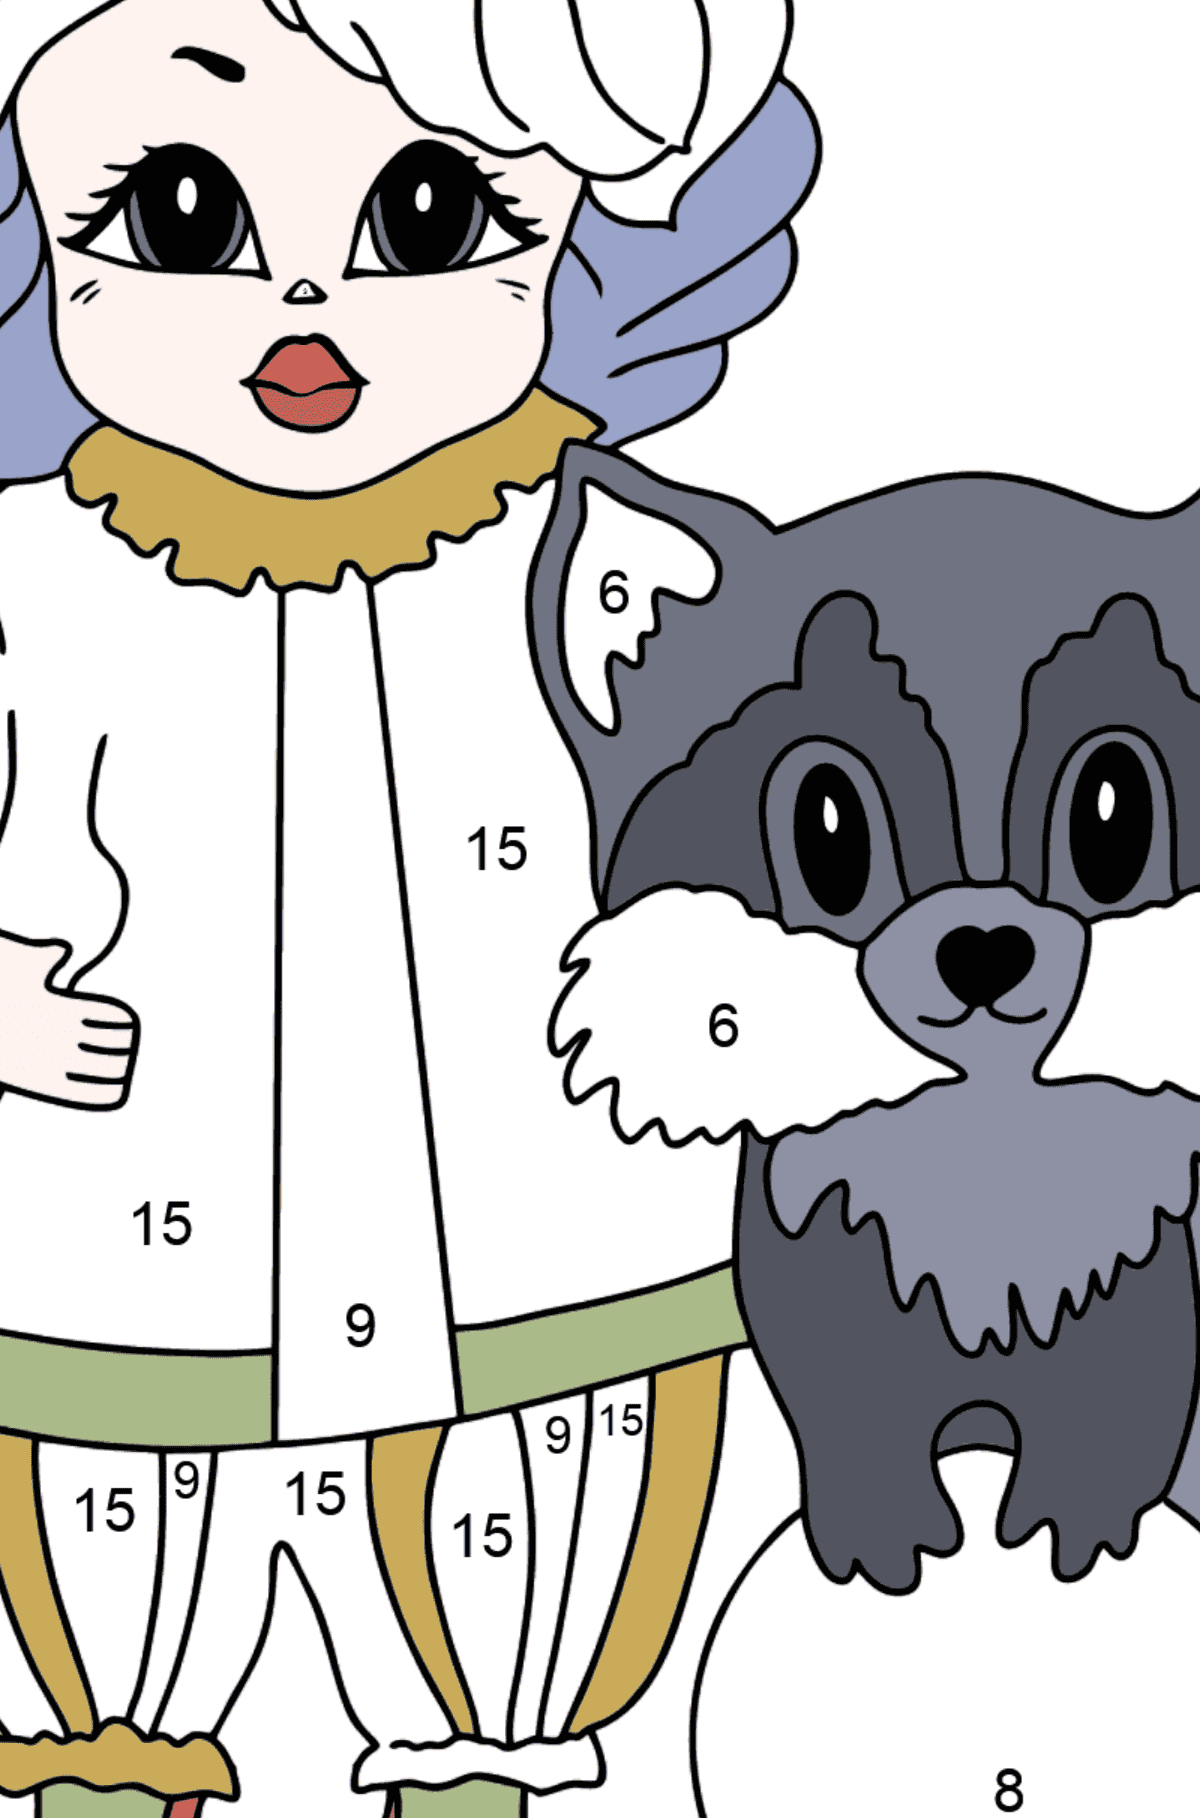 Coloring Page - A Princess with a Cat and a Racoon - For Girls - Coloring by Numbers for Kids